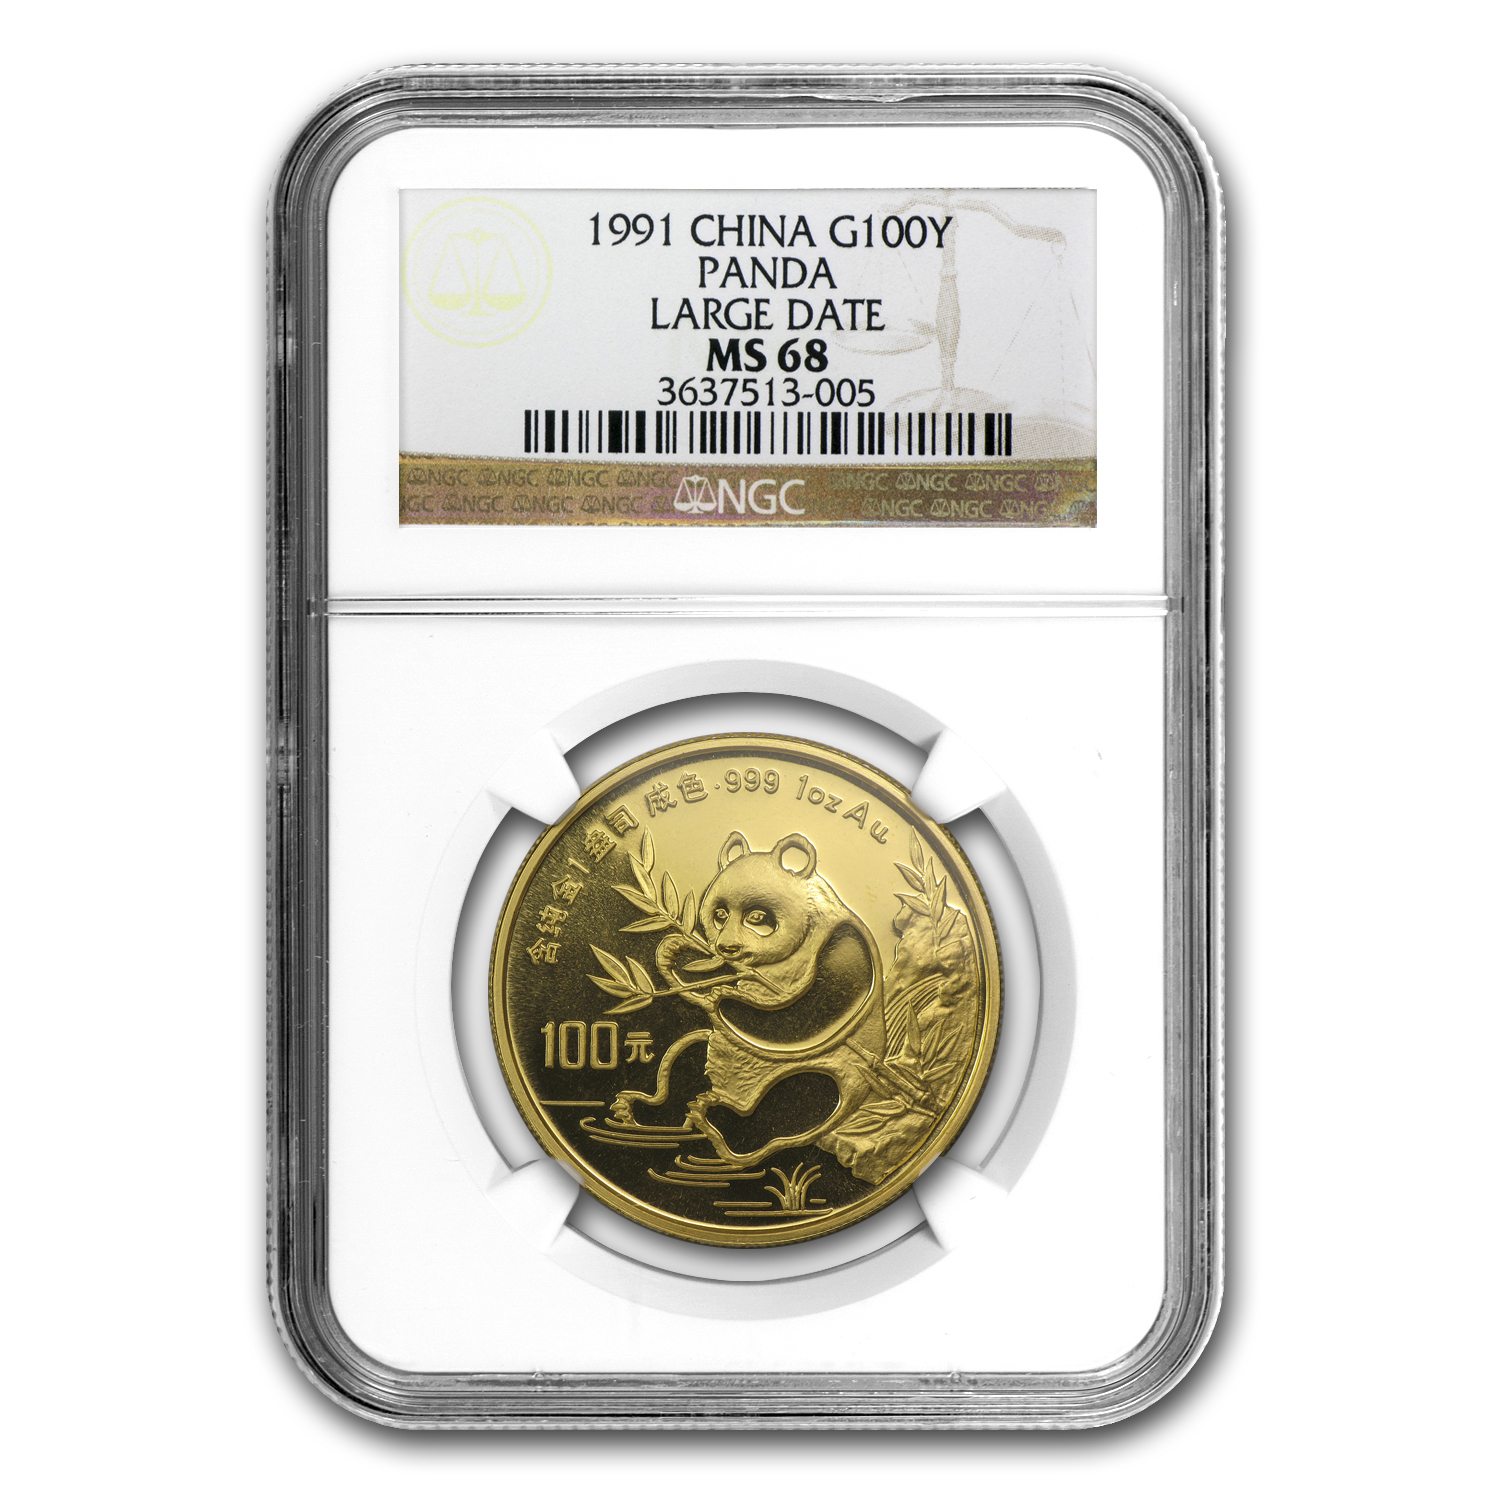 1991 1 oz Gold Chinese Panda Large Date MS-68 NGC